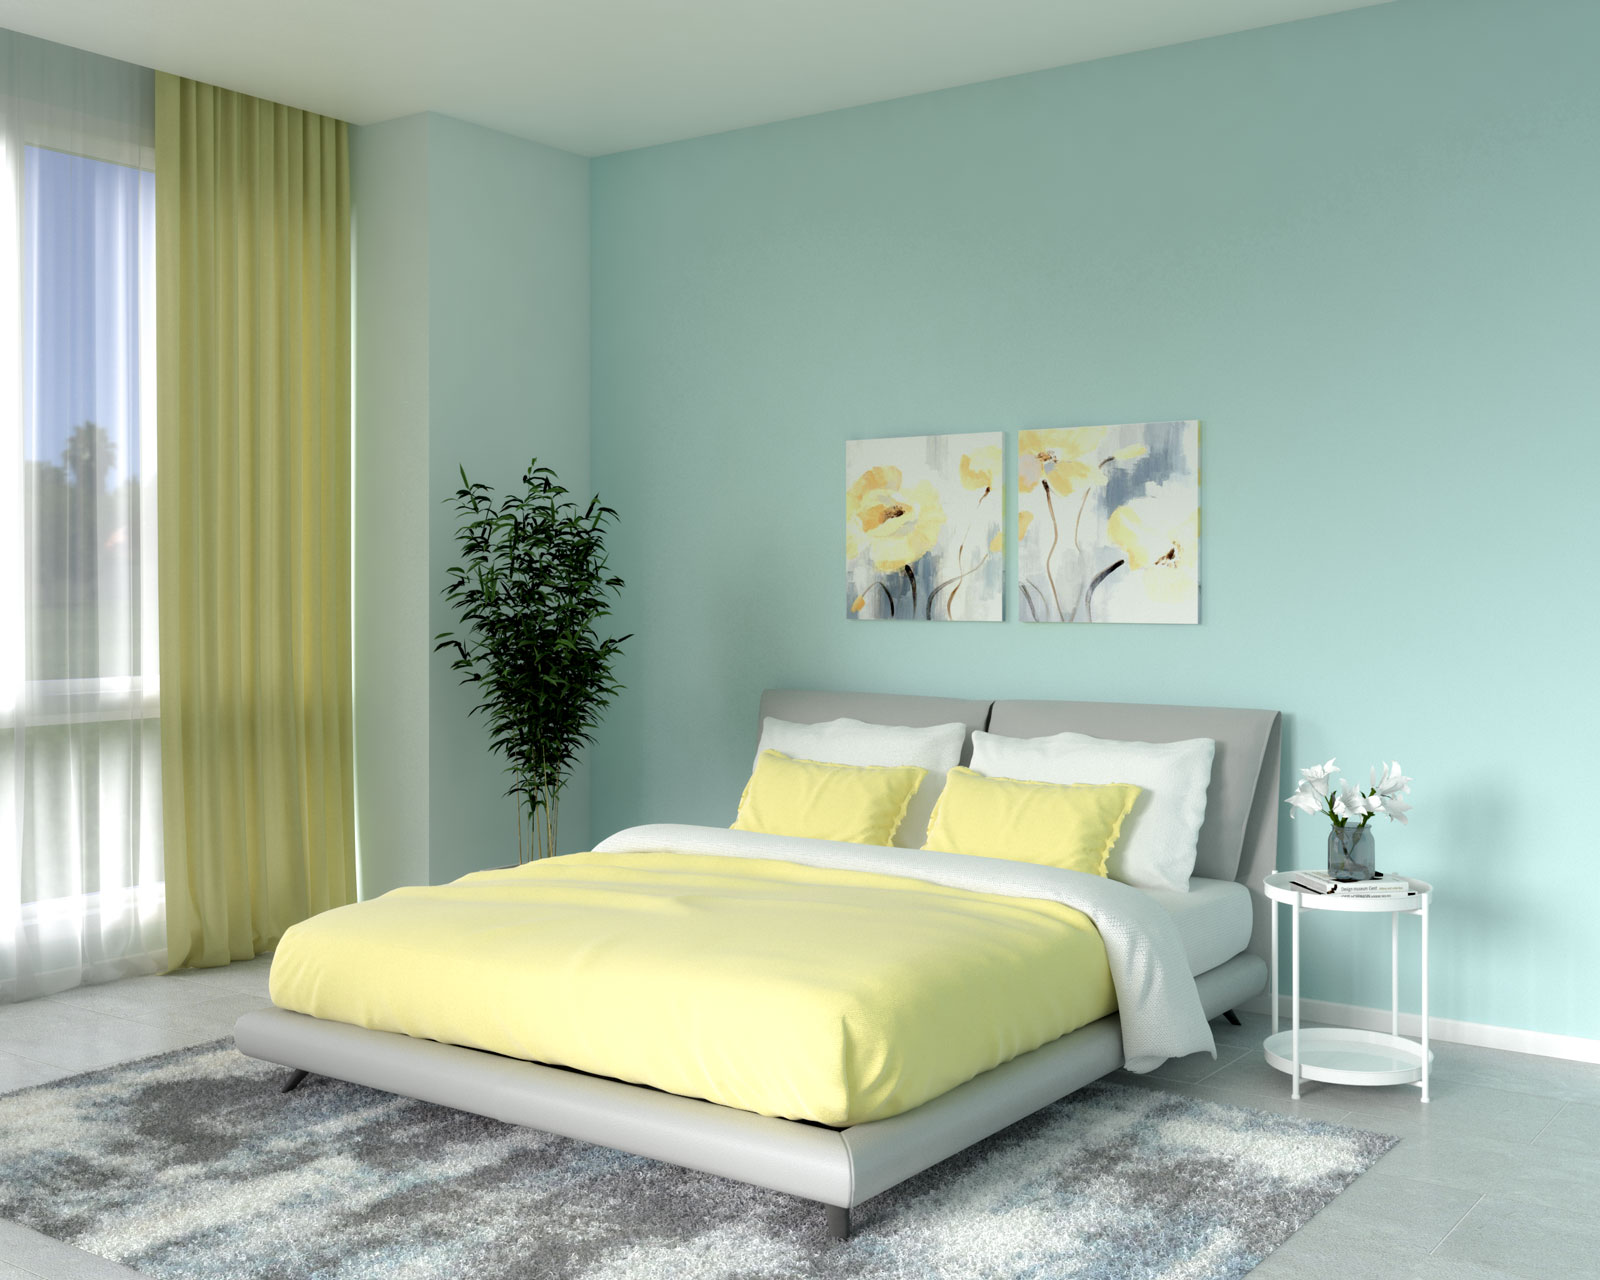 Light aqua wall with yellow accents